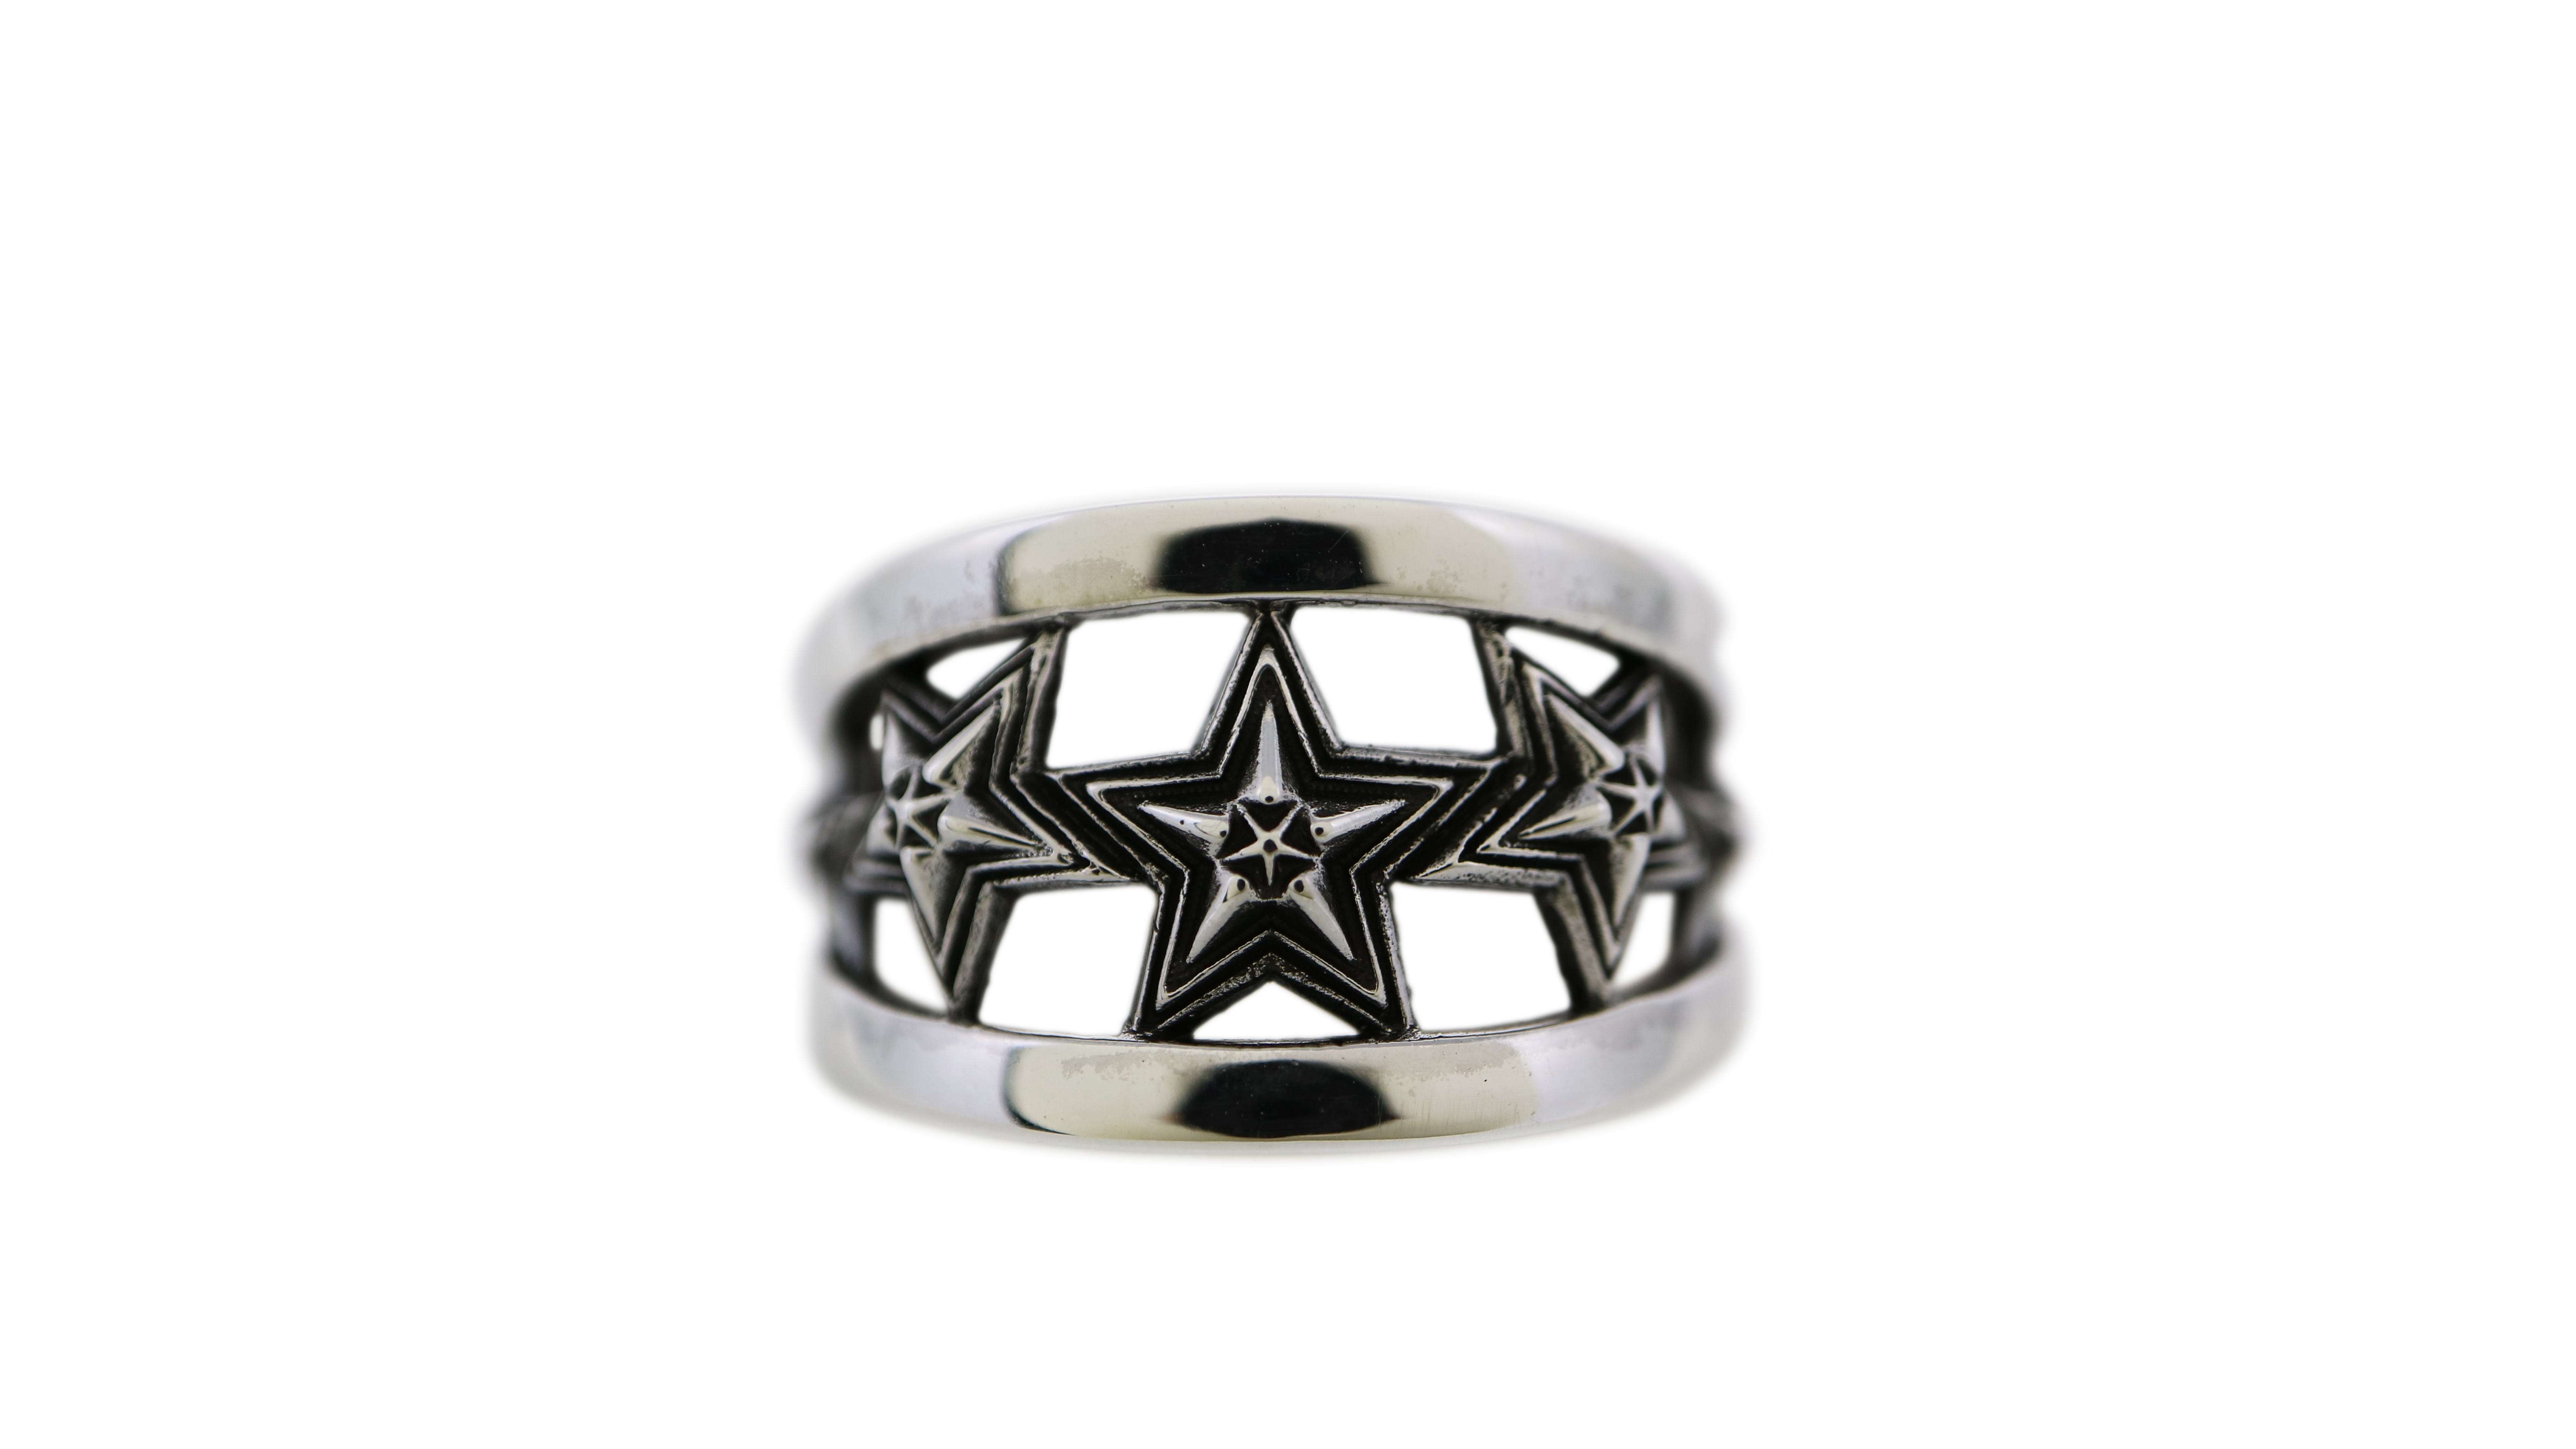 5 STAR IN STAR CUT OUT RING [USD$530]